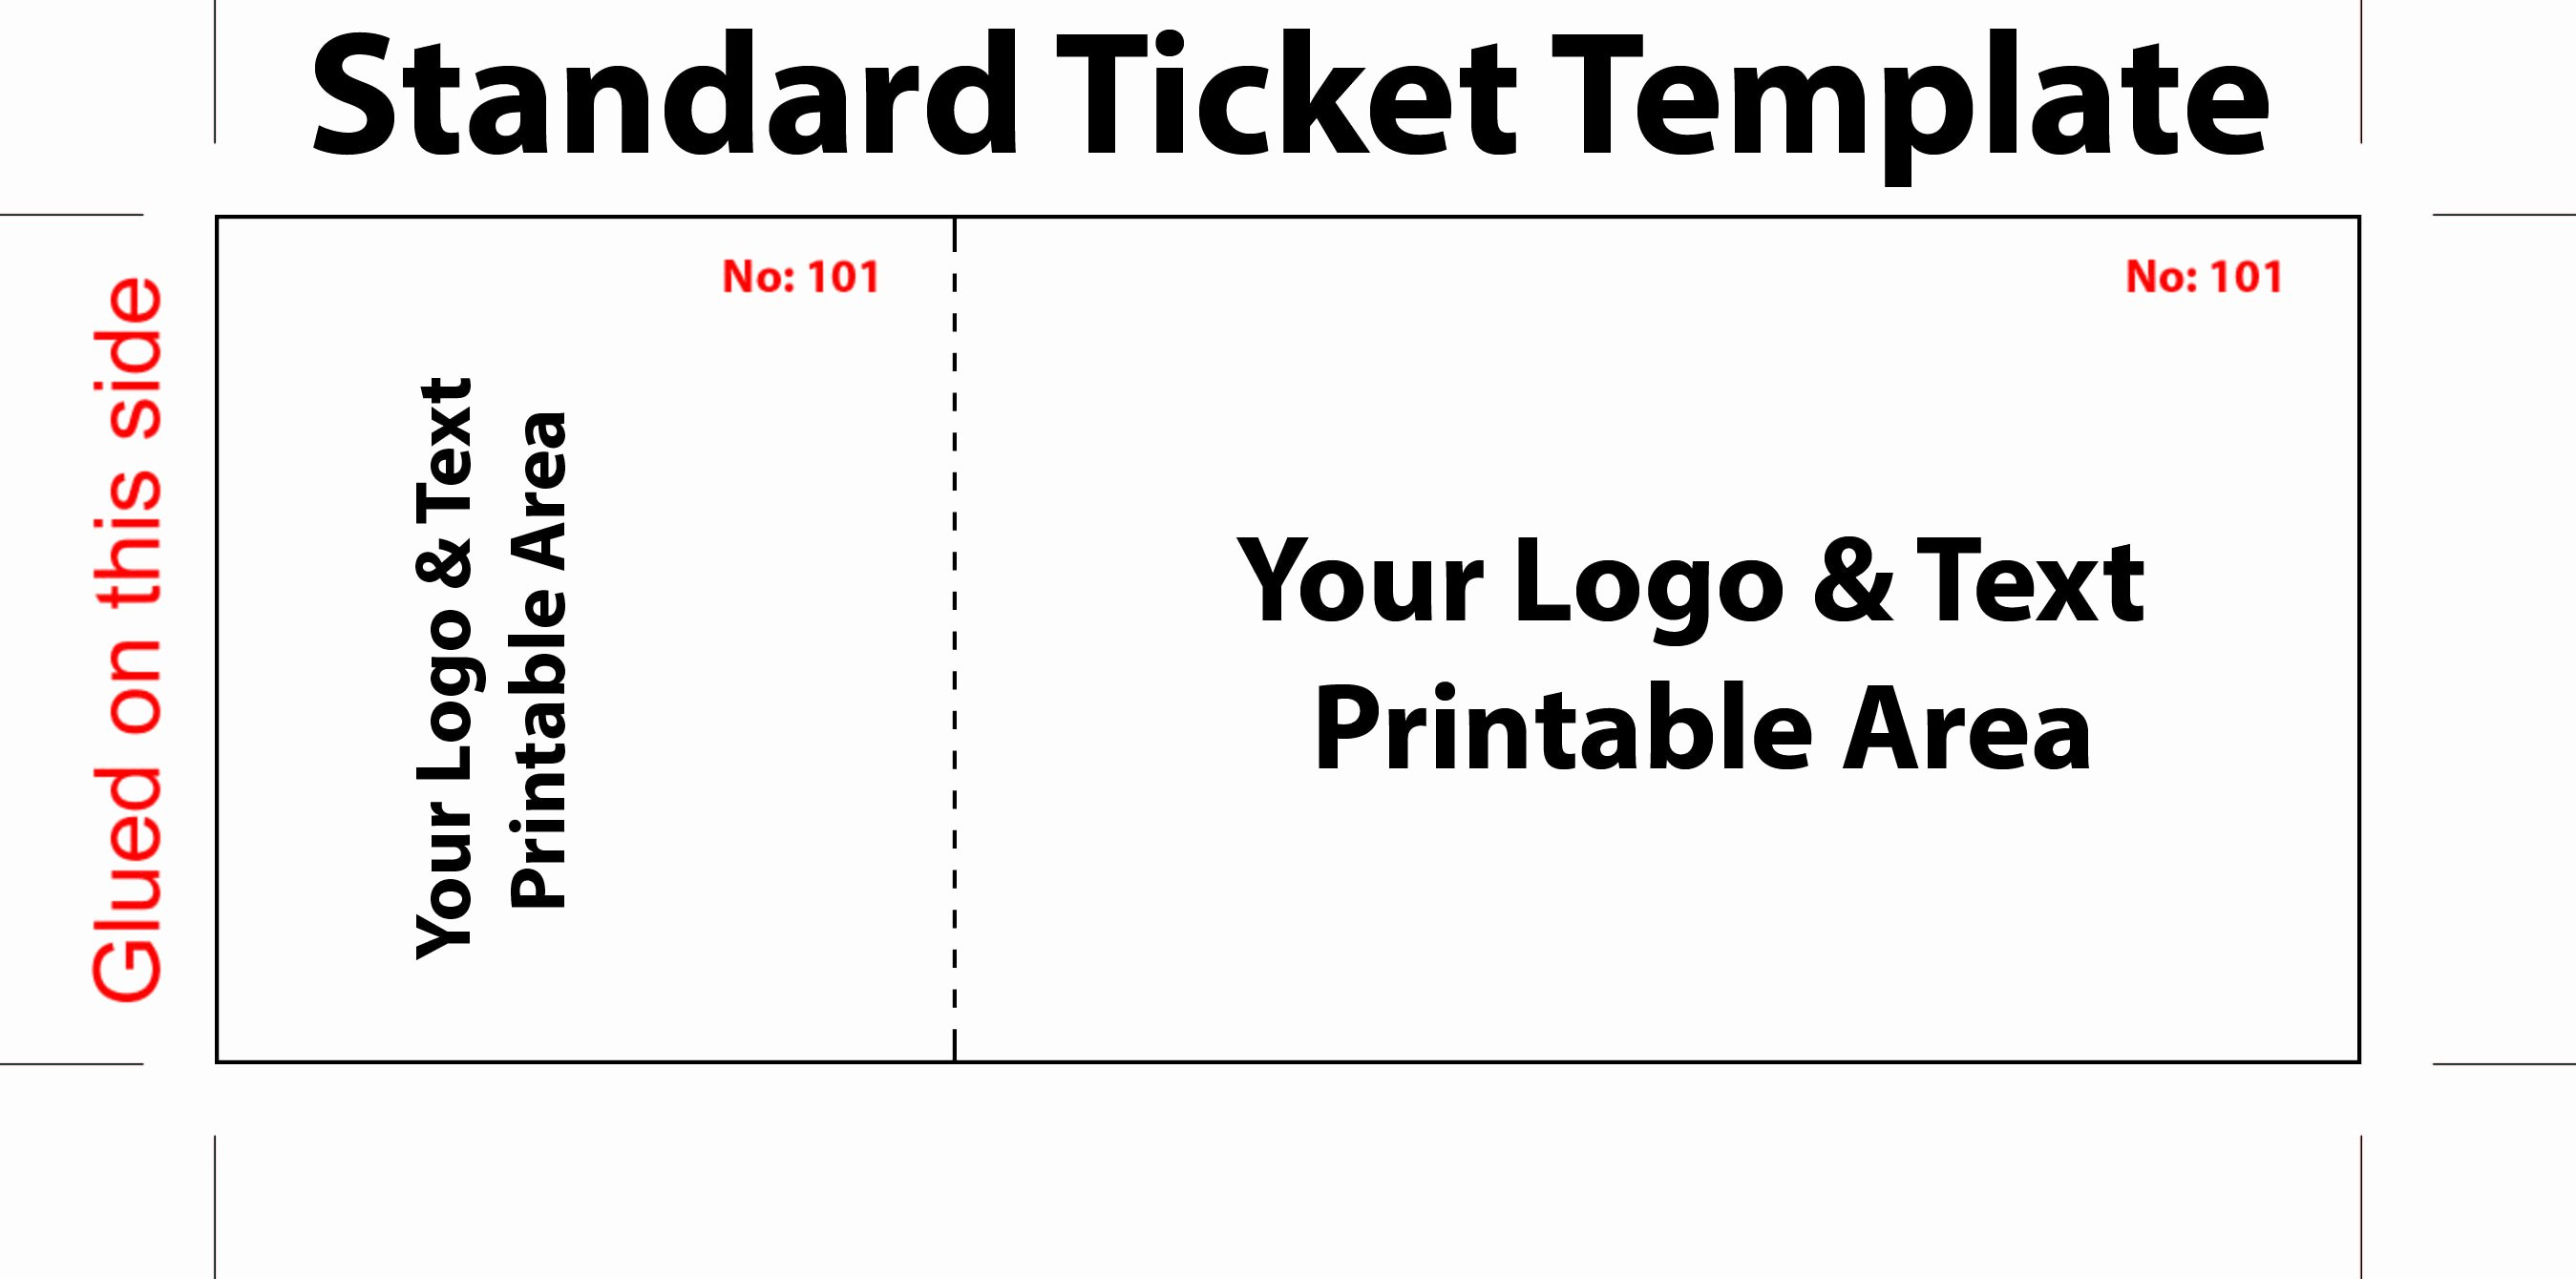 Free Printable Tickets Template Beautiful Free Editable Standard Ticket Template Example for Concert